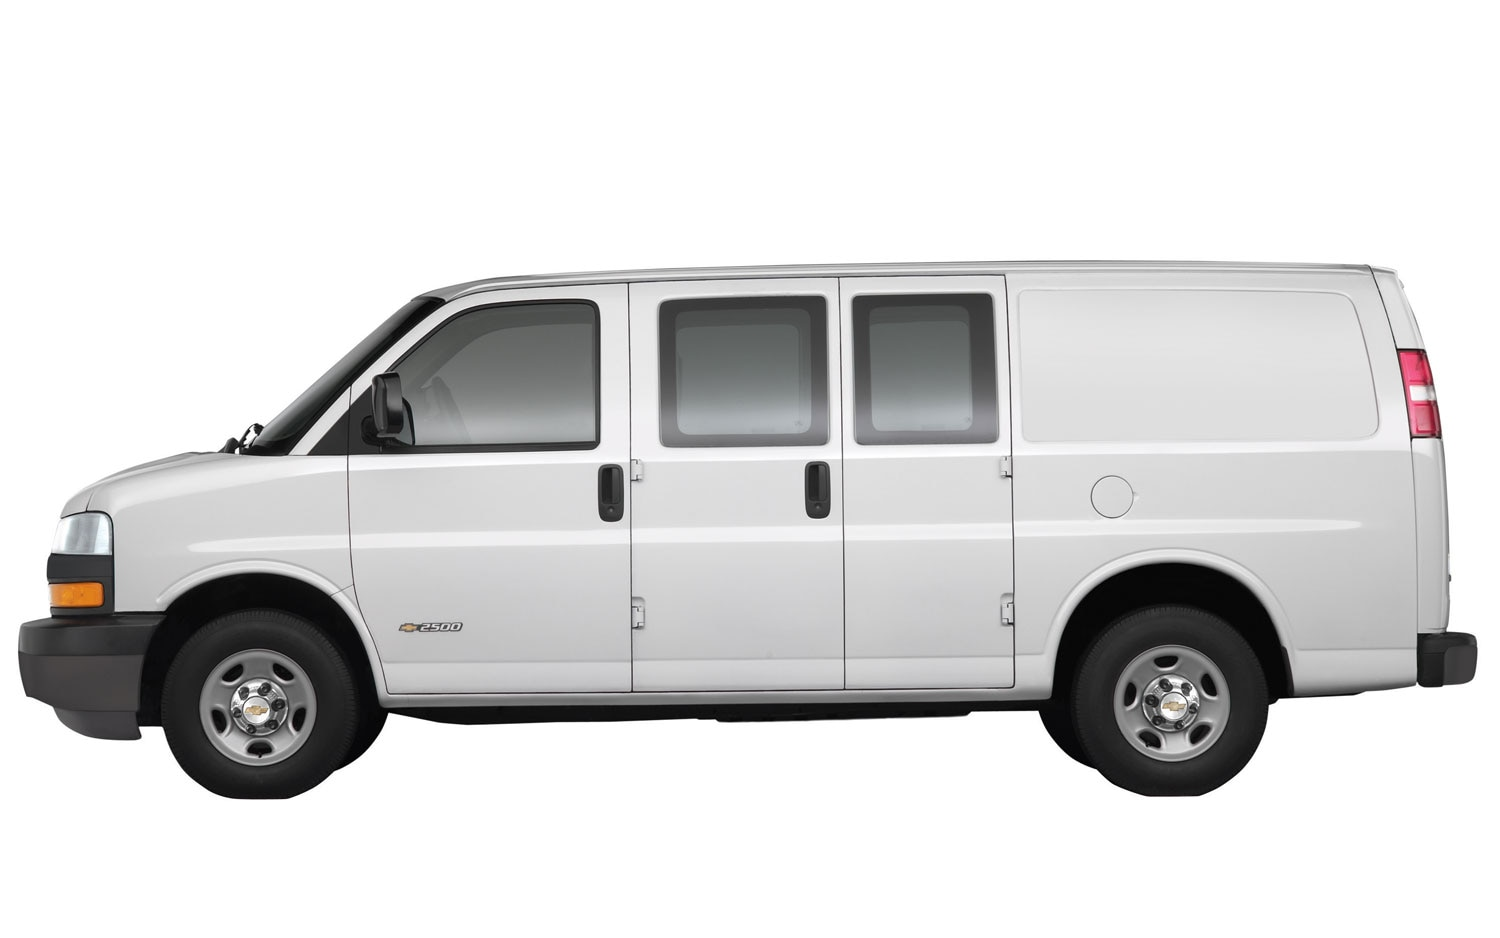 rust issues prompt nhtsa investigations of 2003 2004 ford minivans gm full size vans. Black Bedroom Furniture Sets. Home Design Ideas